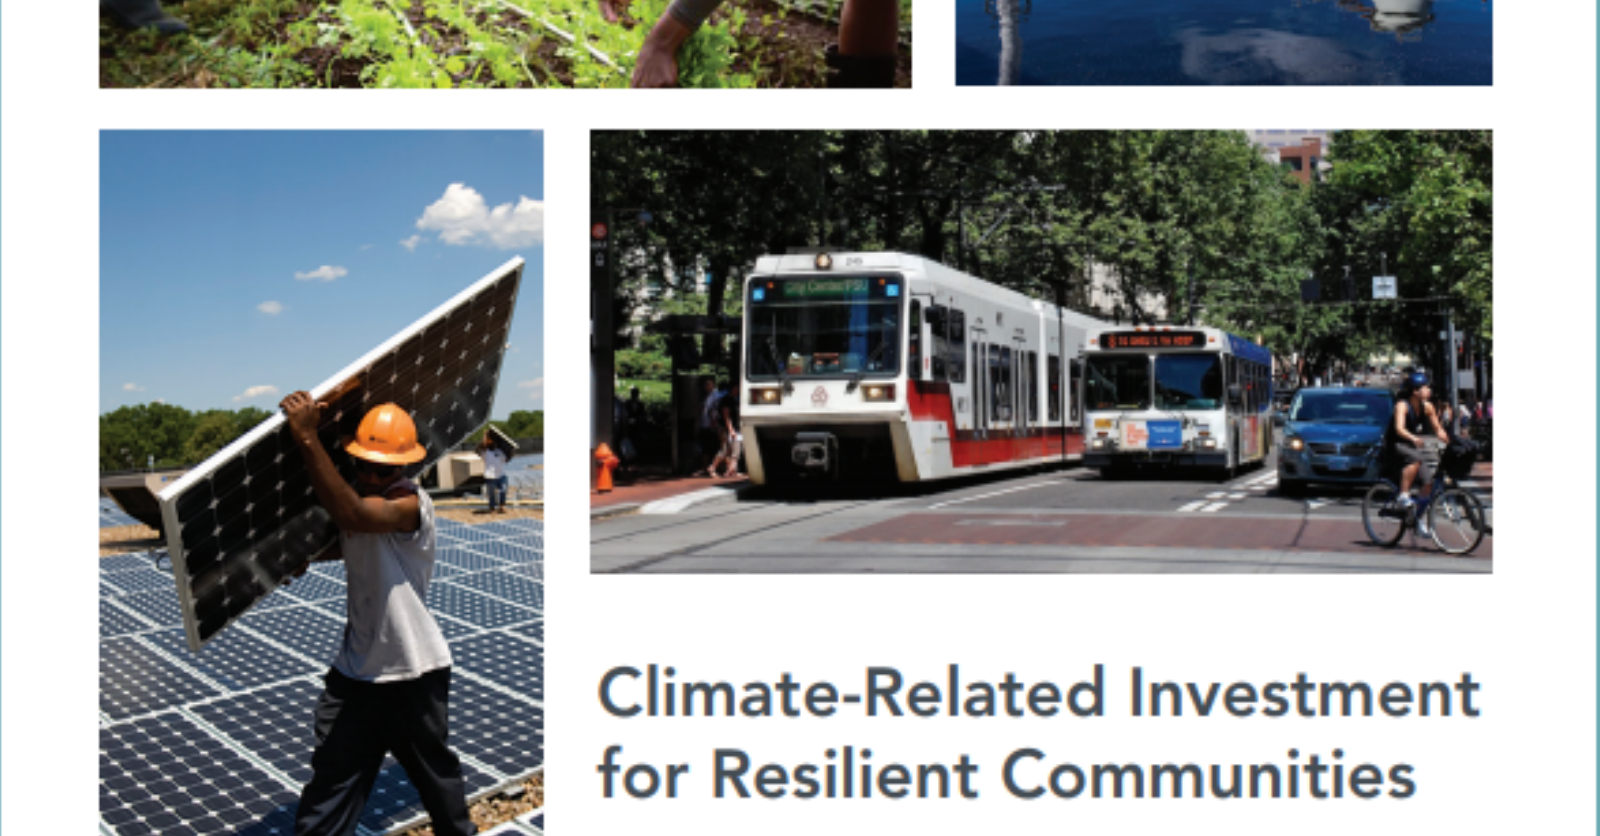 Croatan Institute Releases New Paper on Investing in Community-Oriented Climate Solutions